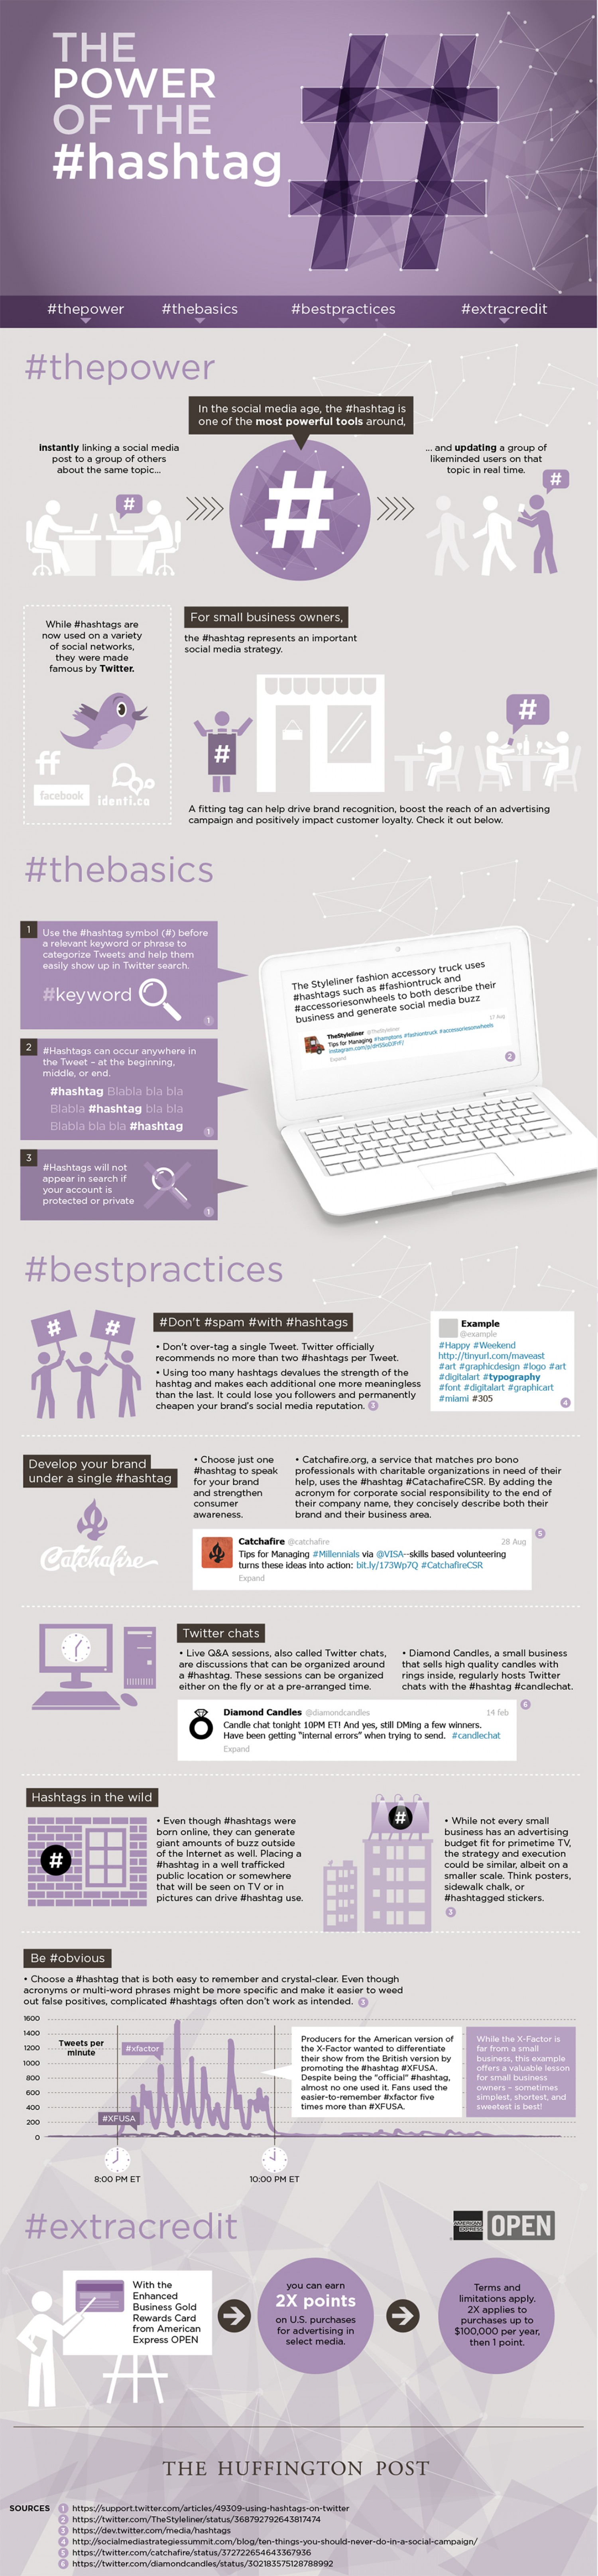 Power Of Hashtag Practices Infographic